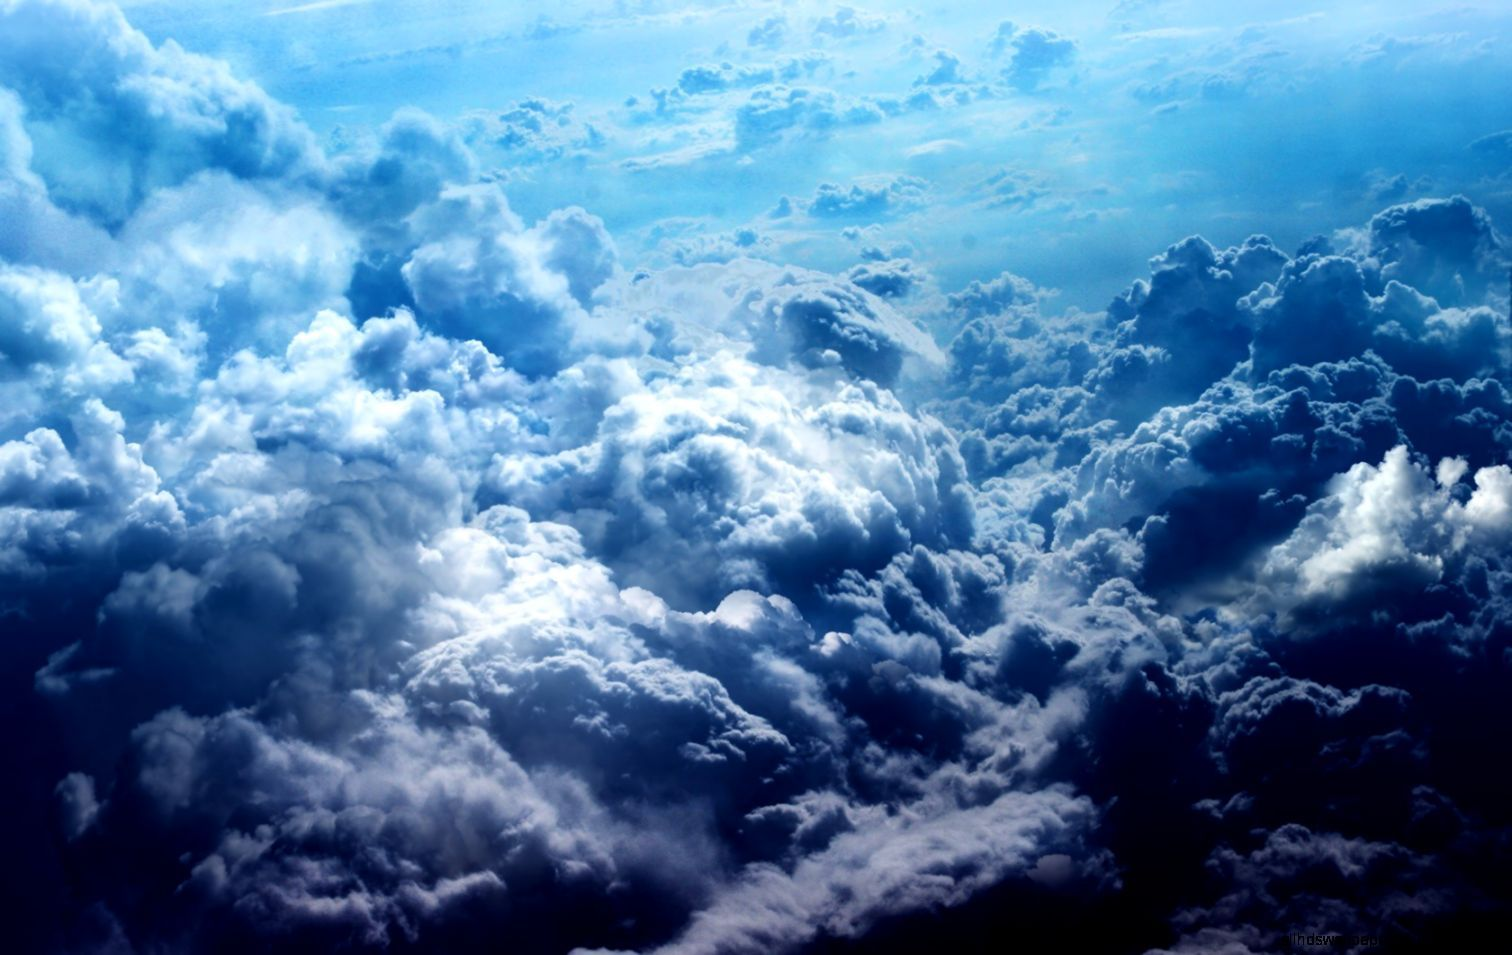 Clouds Desktop Wallpaper Hd All Hd Wallpapers Sky And Clouds